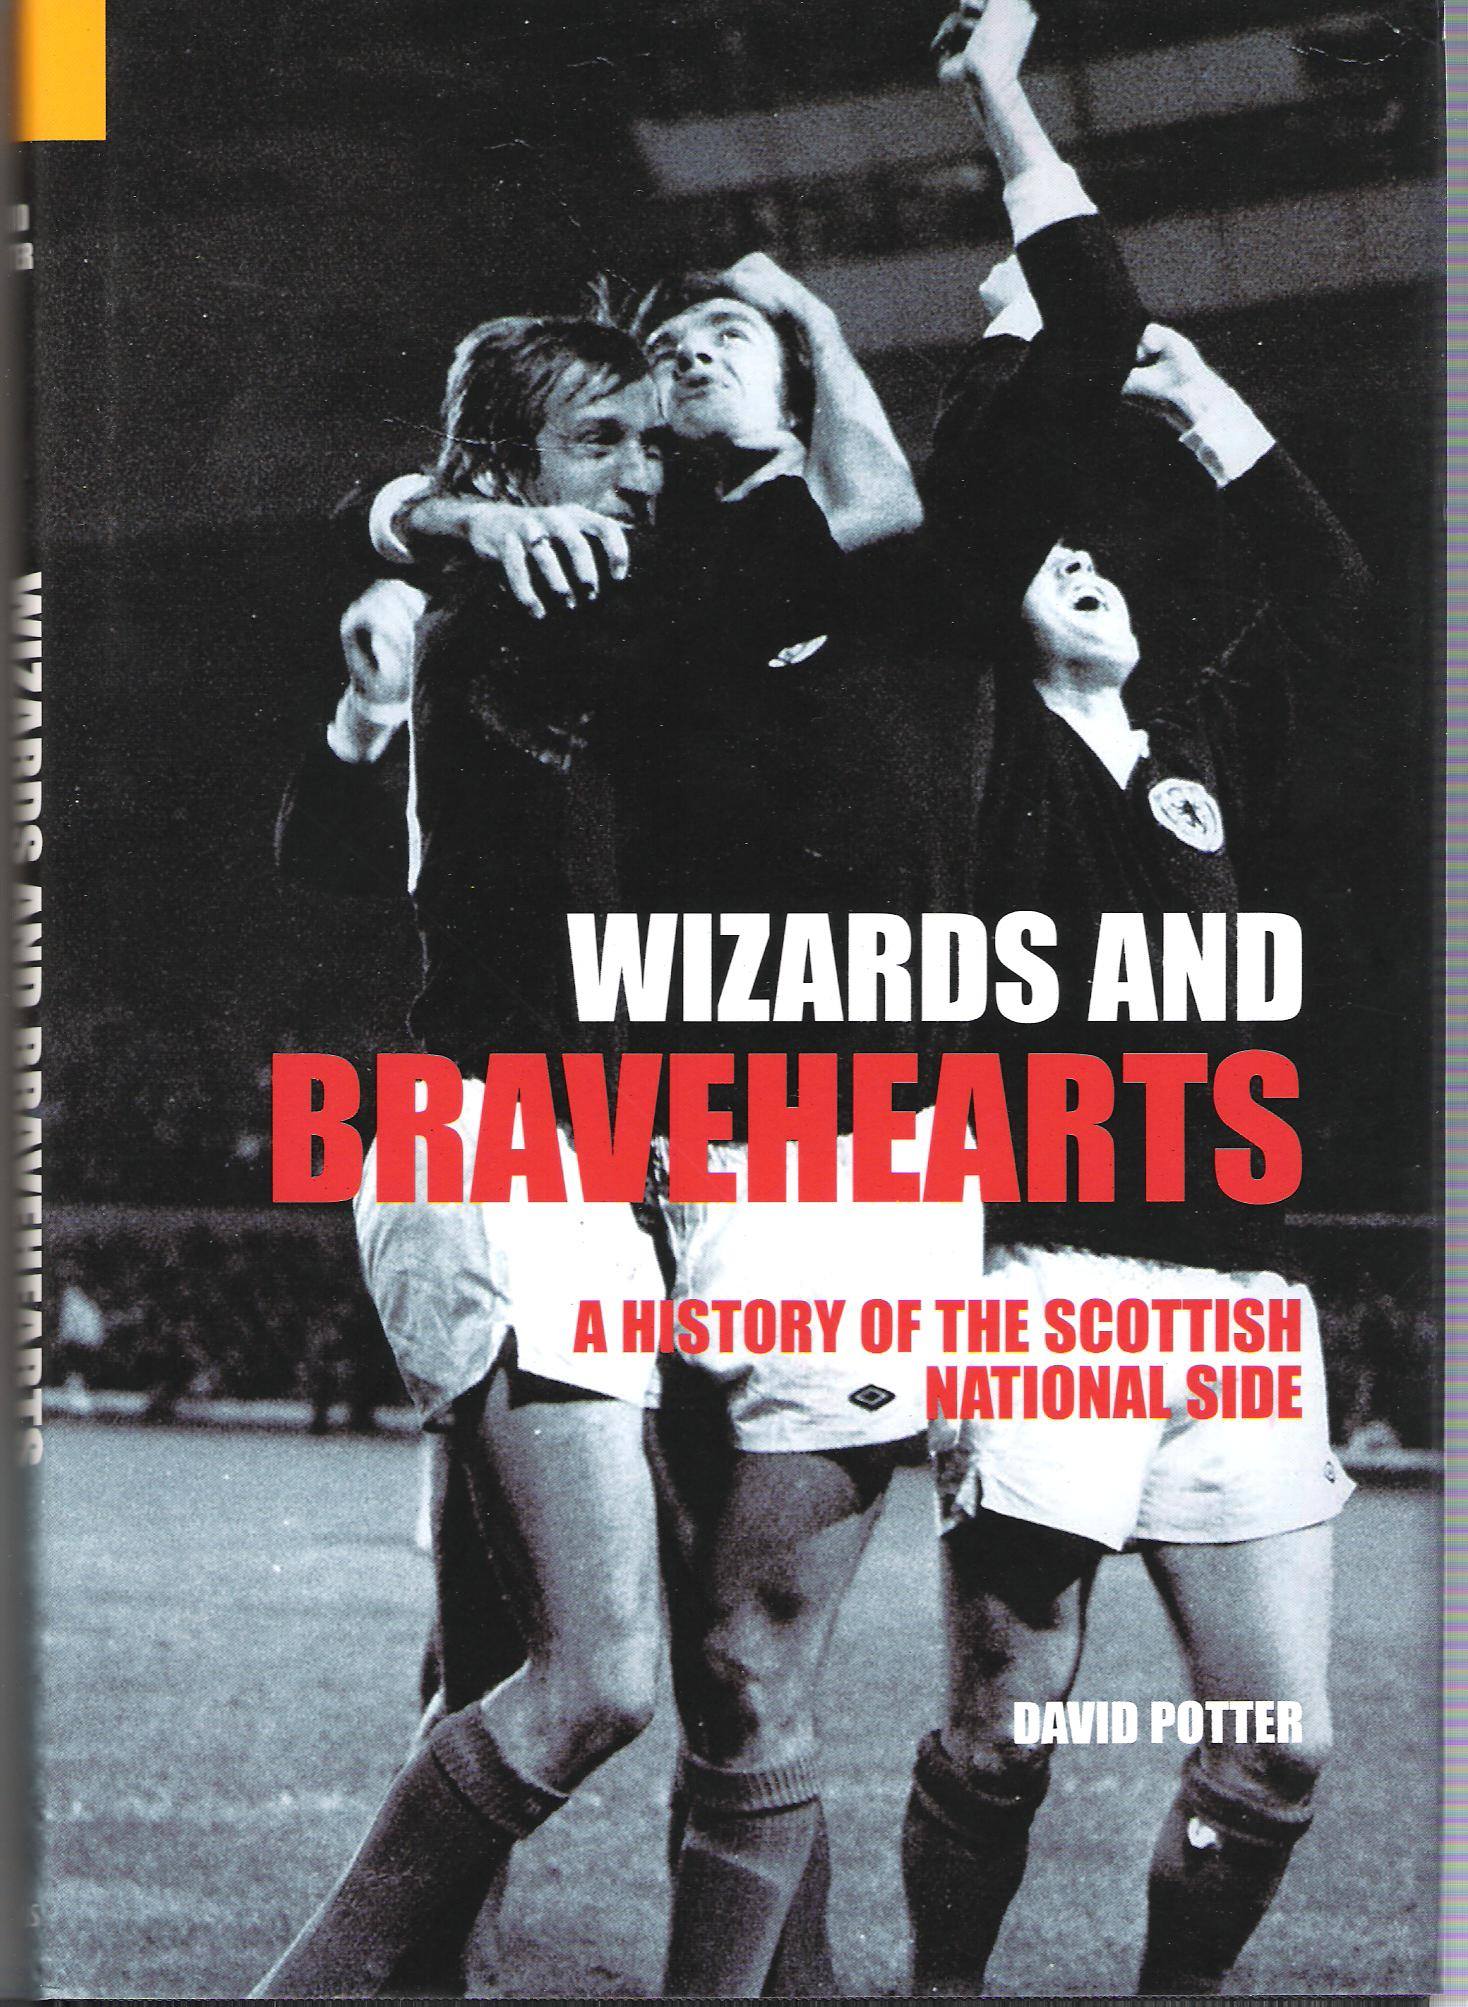 Image for Wizards and Bravehearts: A History of the Scottish National Side.